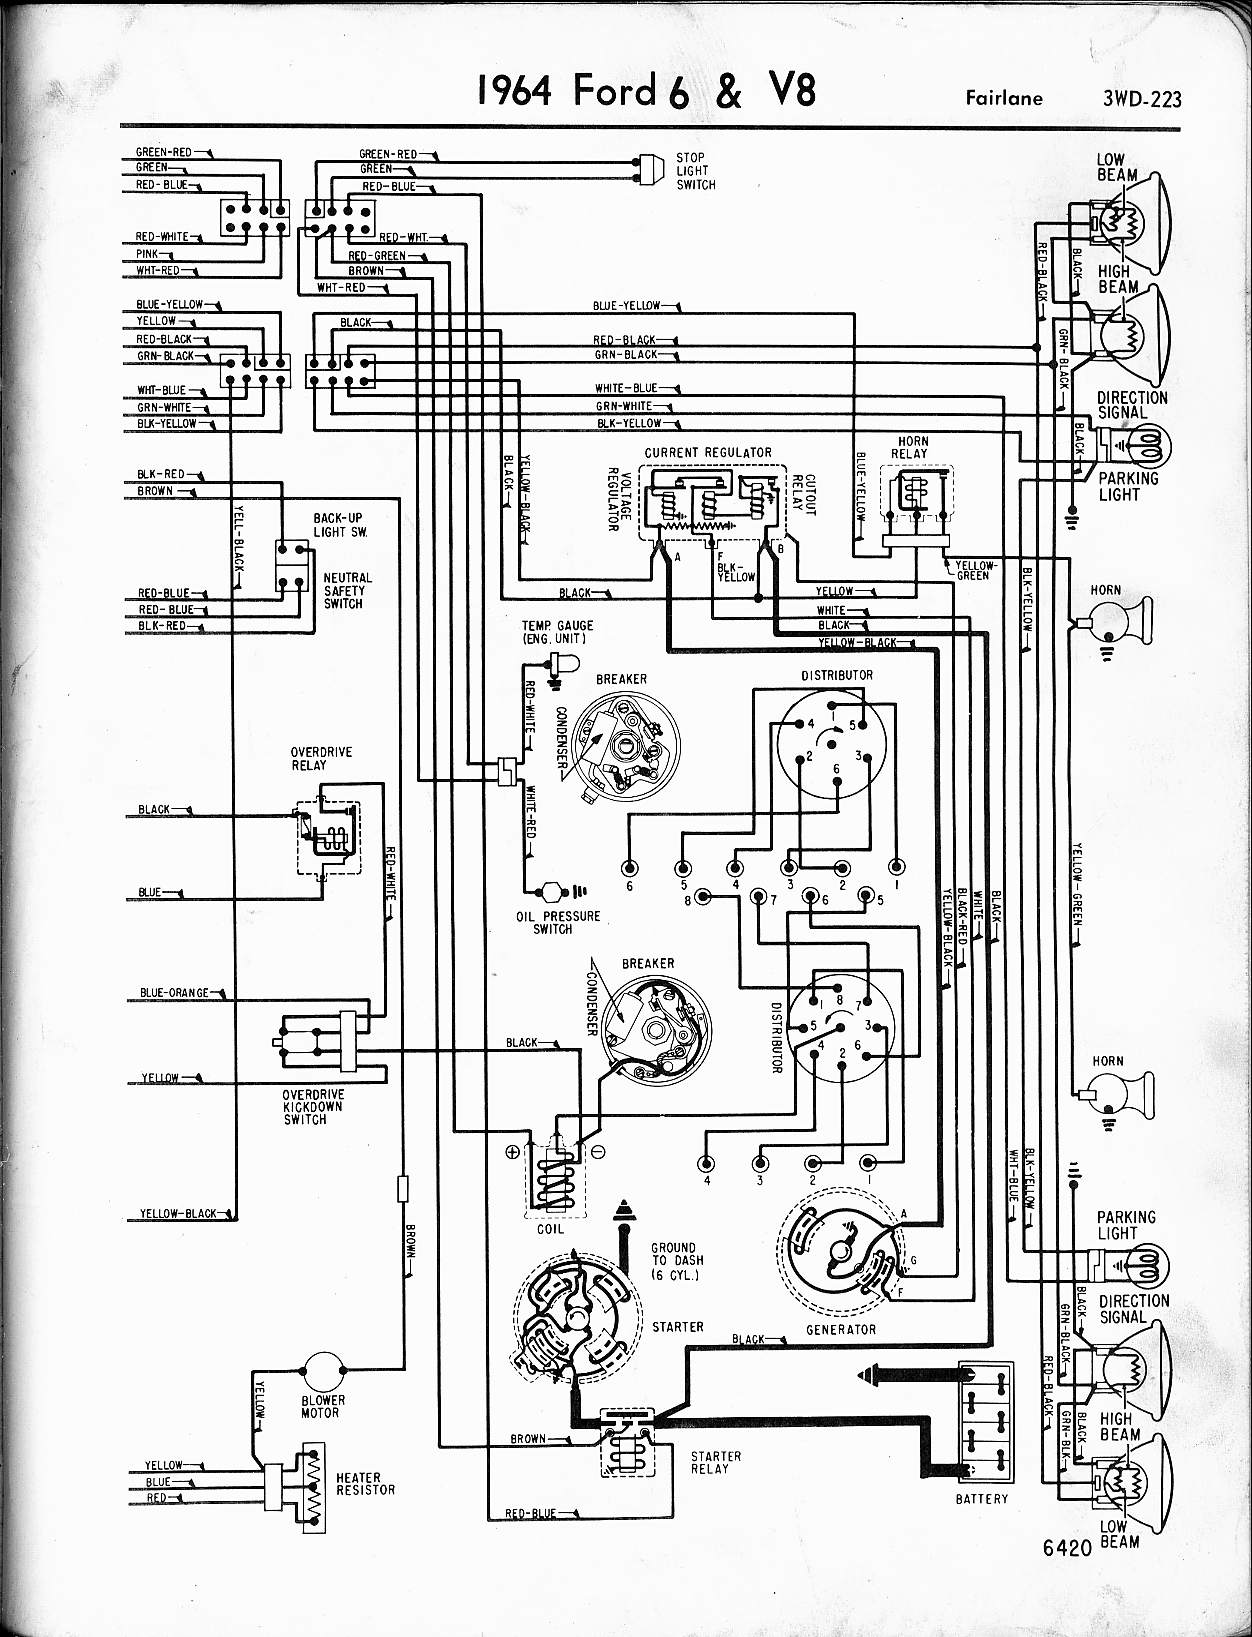 A91bc Ford 289 Engine Diagram